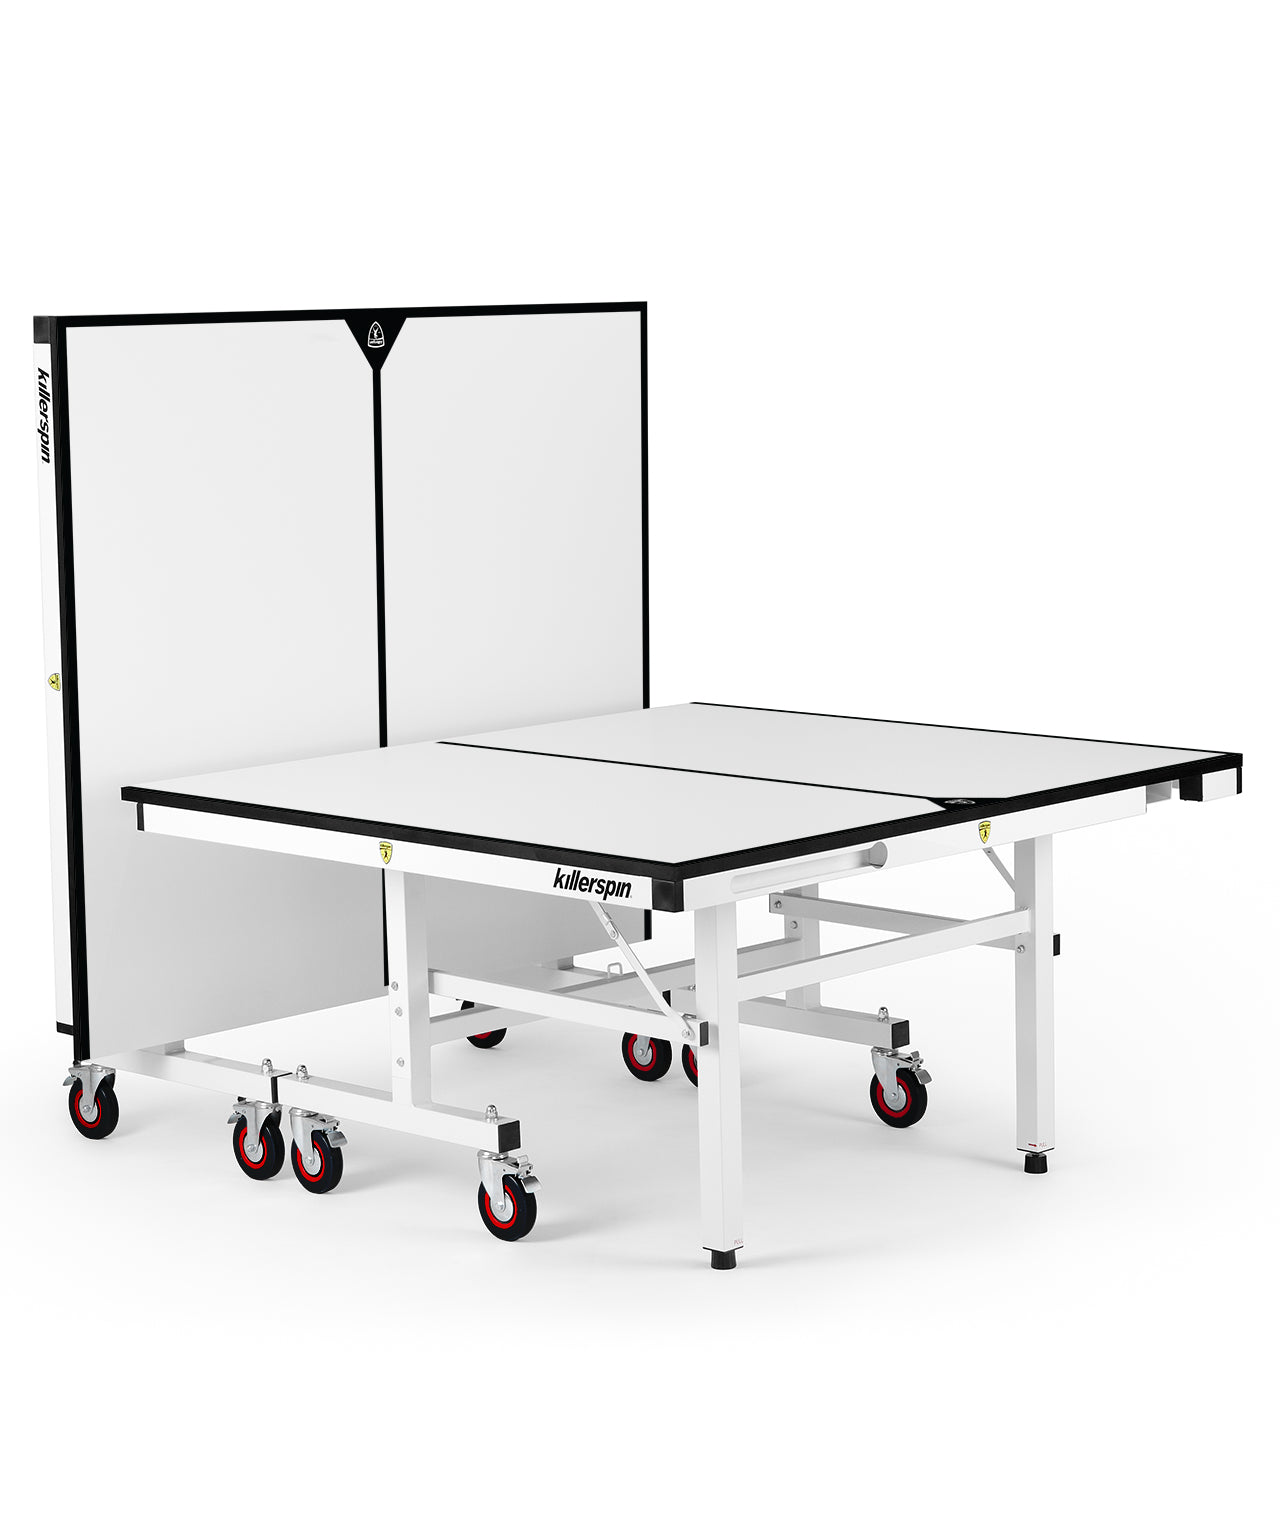 Killerspin MyT Ping Pong White Table MyT10 Bianco Pure - Playback Position